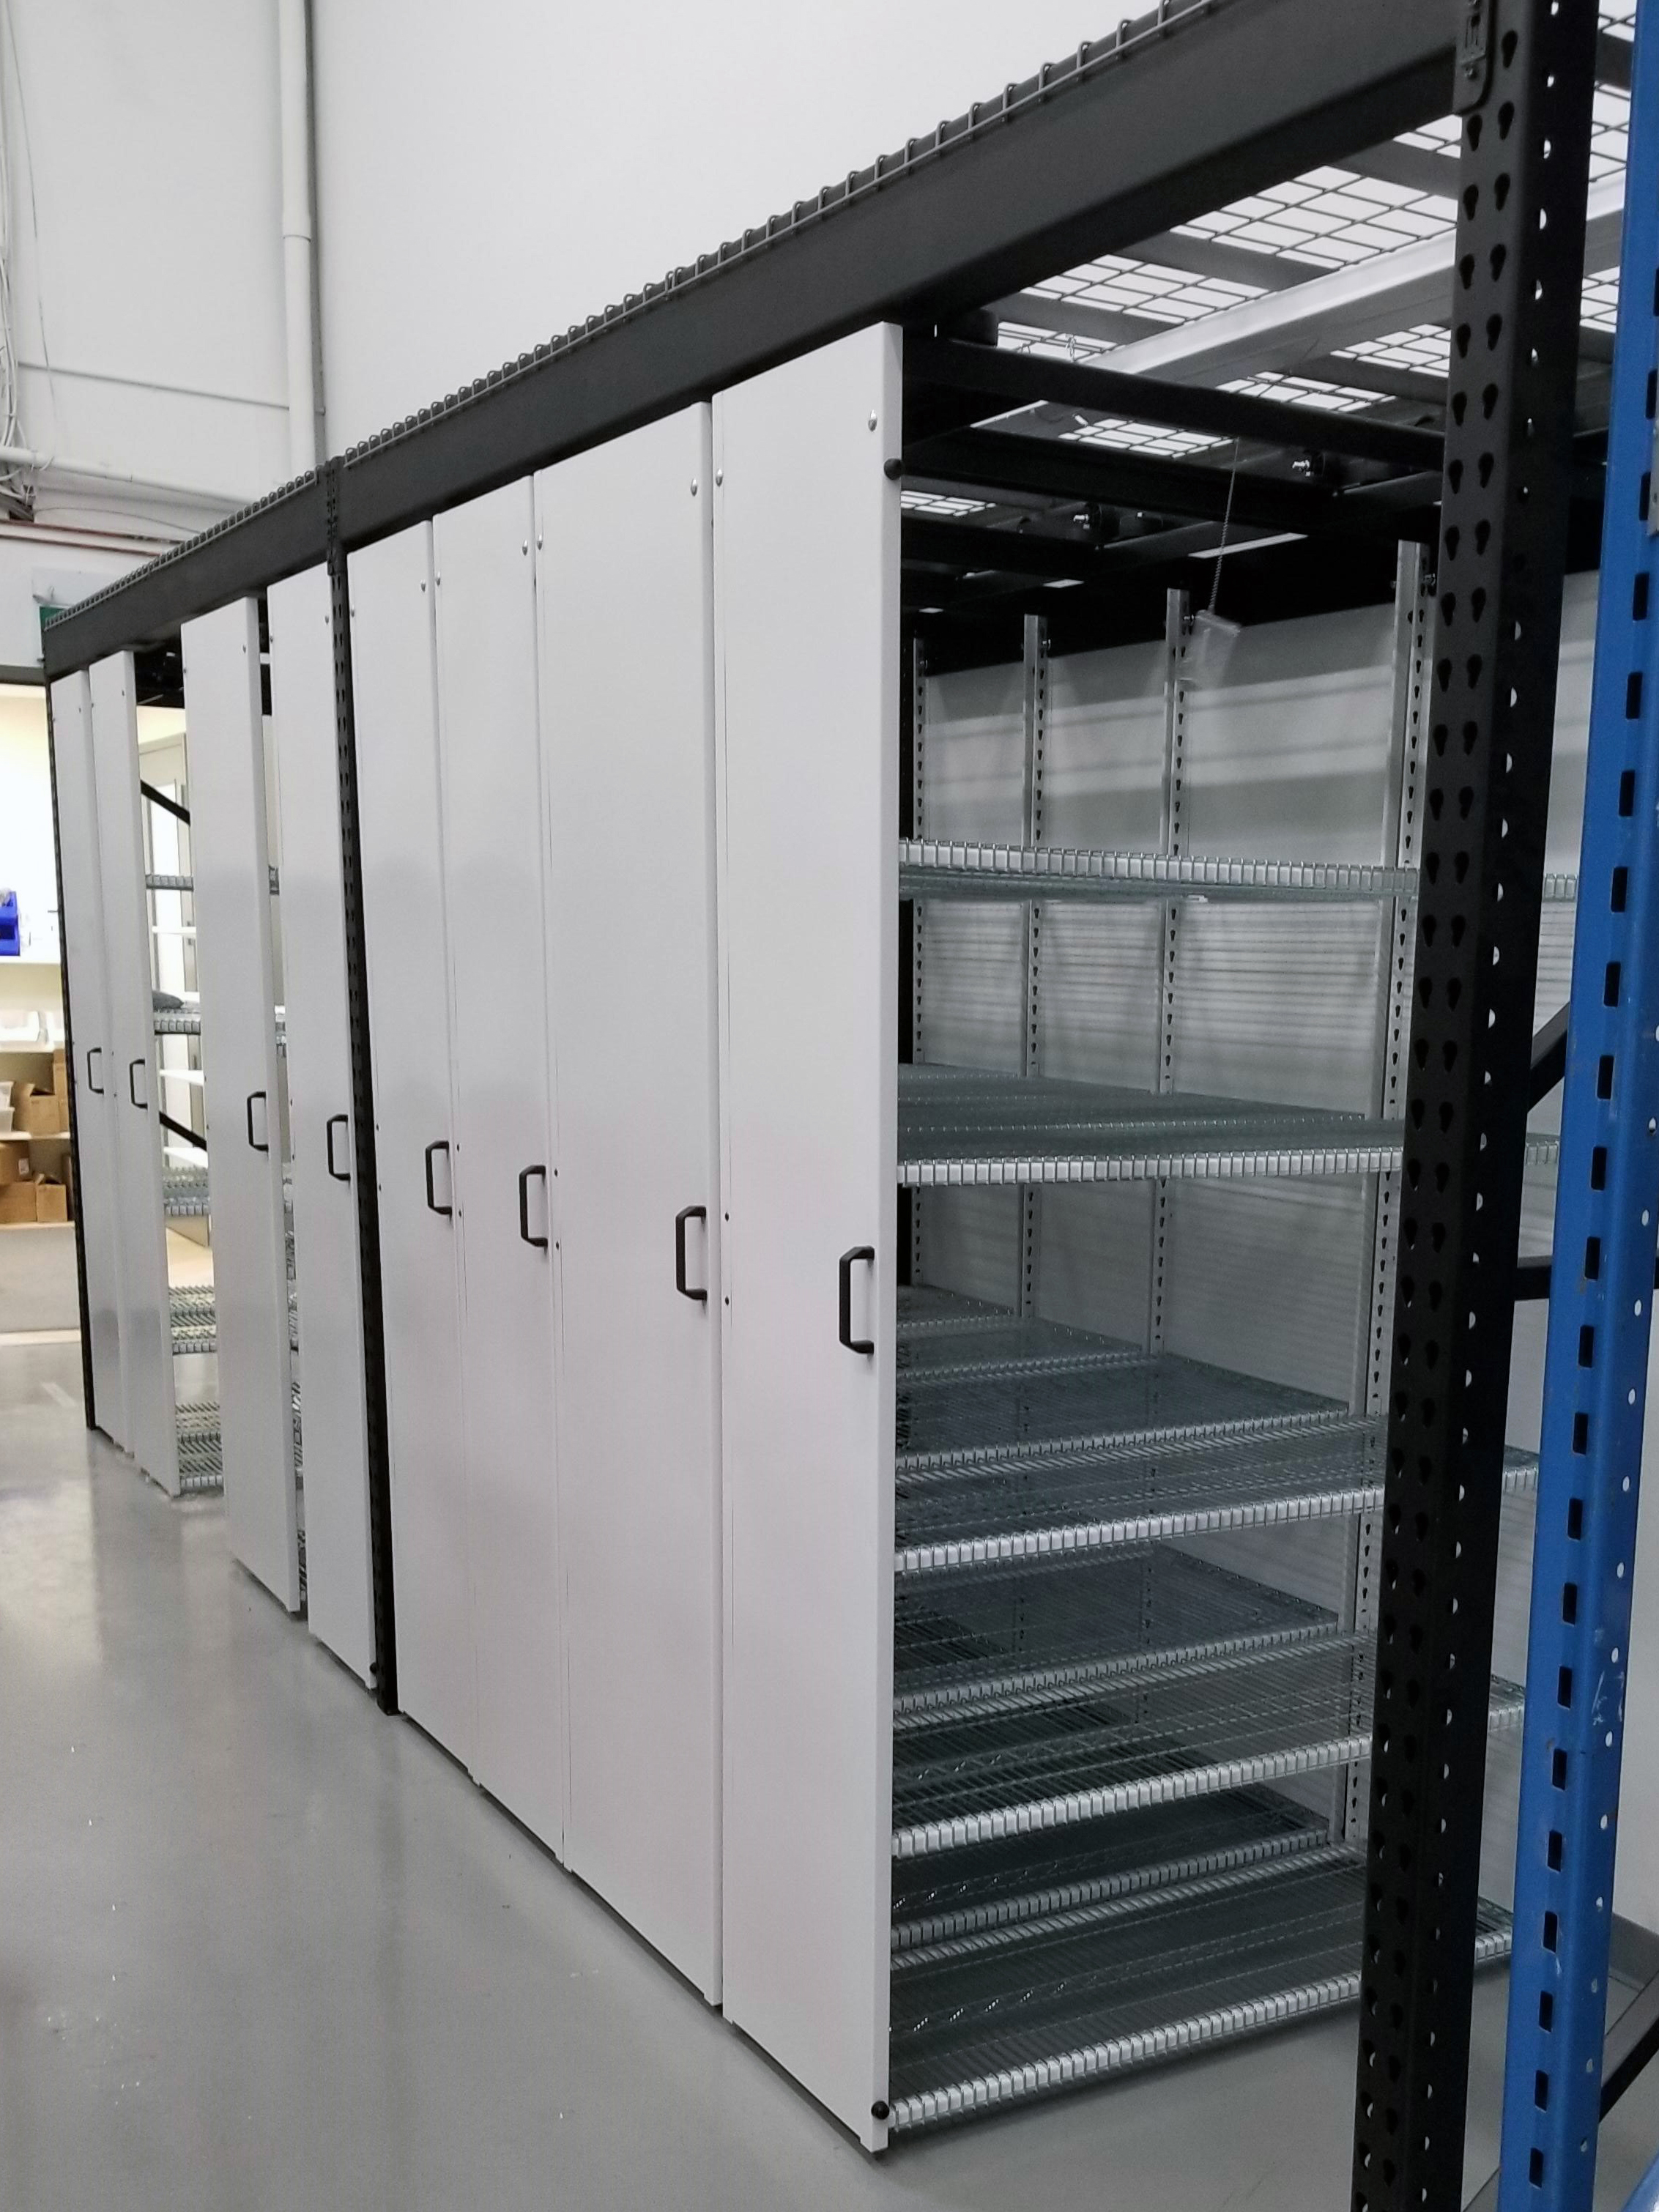 Sentrex LevPro Warehouse Storage